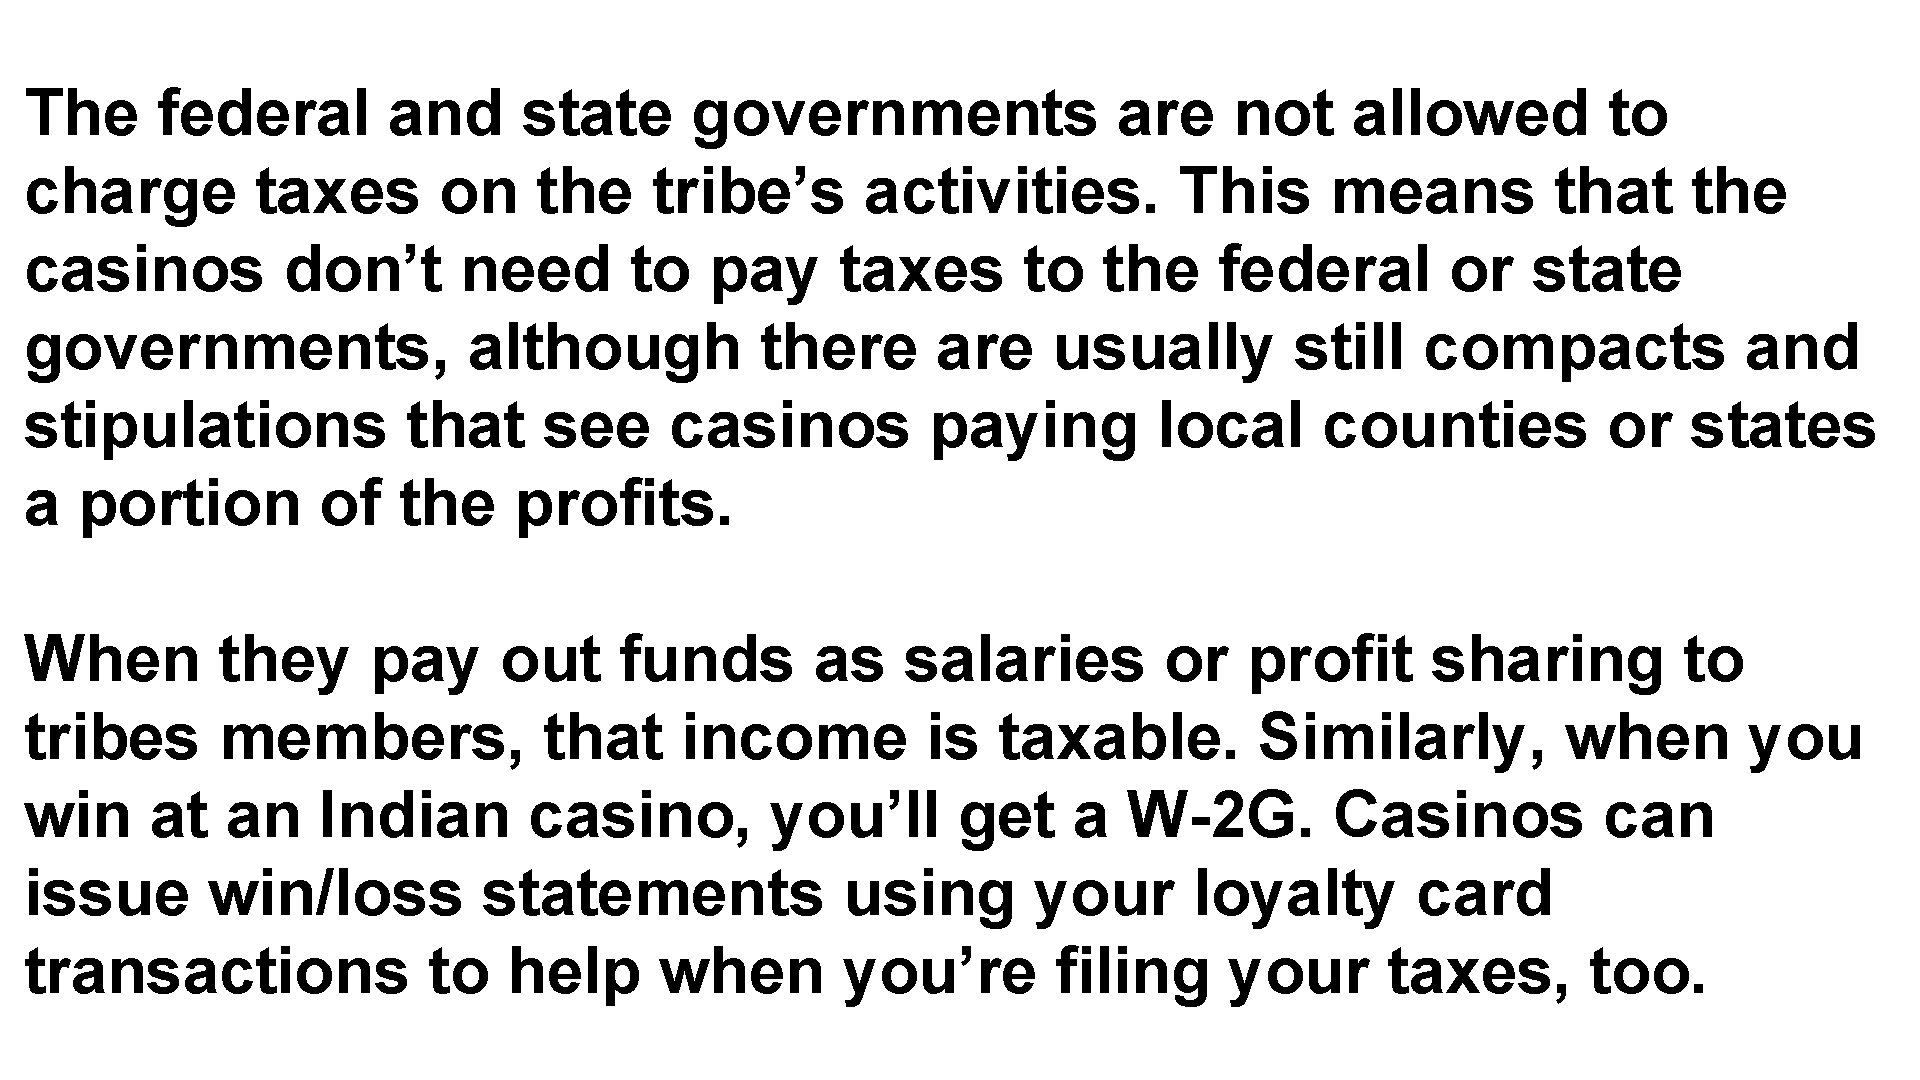 The federal and state governments are not allowed to charge taxes on the tribe's